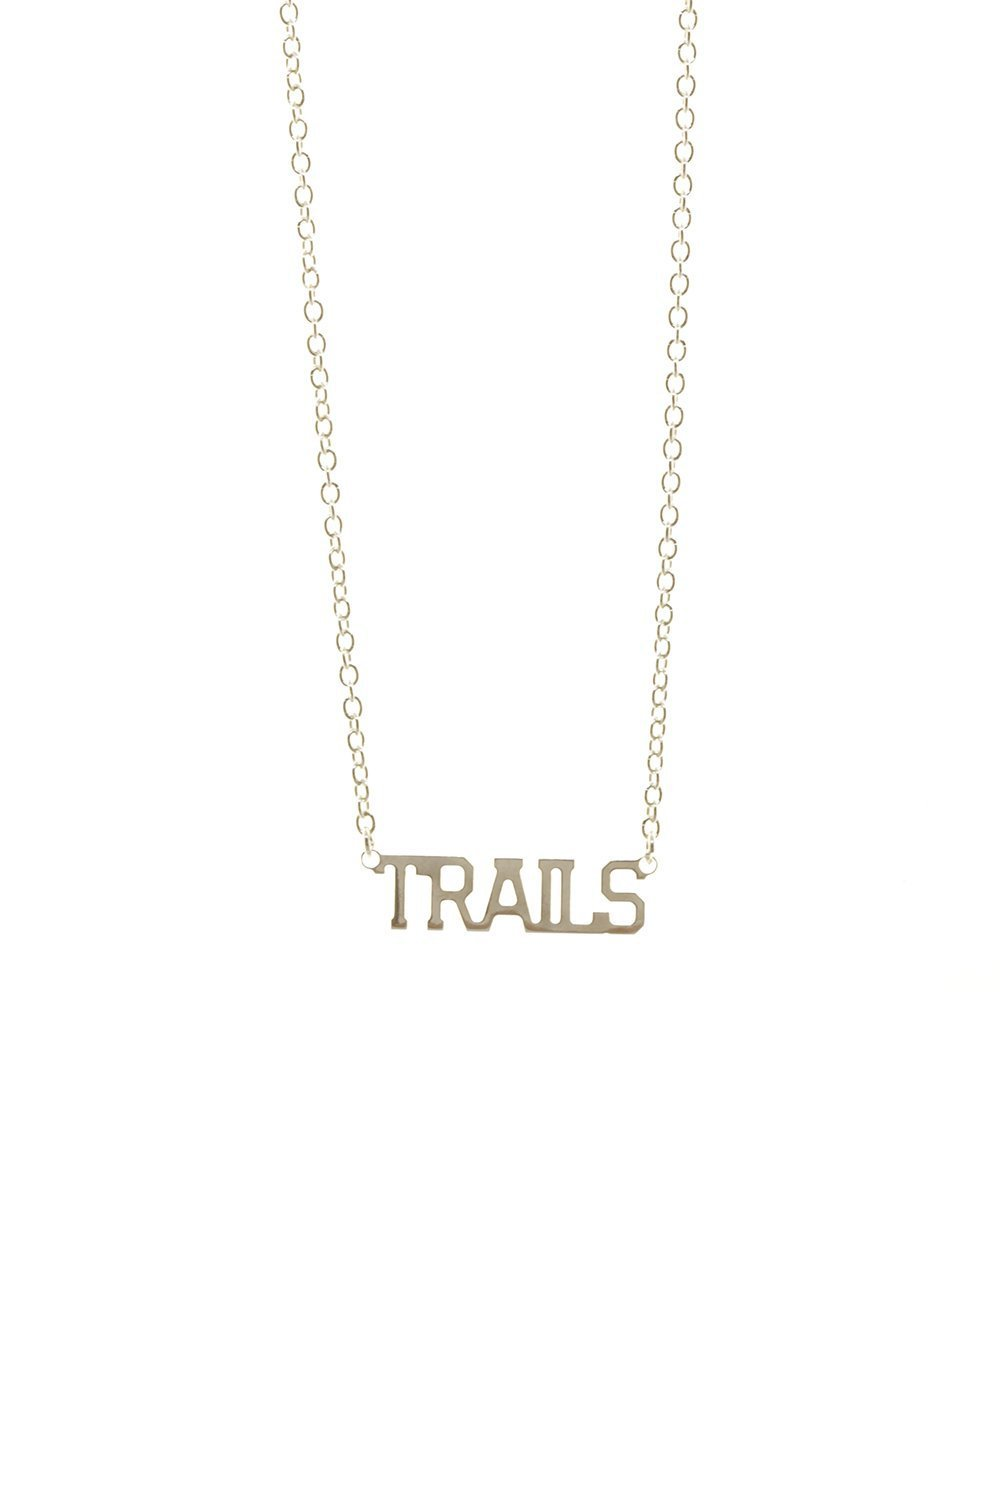 Sarah Marie Design Studio Necklace Sterling Silver / Fine Cable TRAILS Necklace